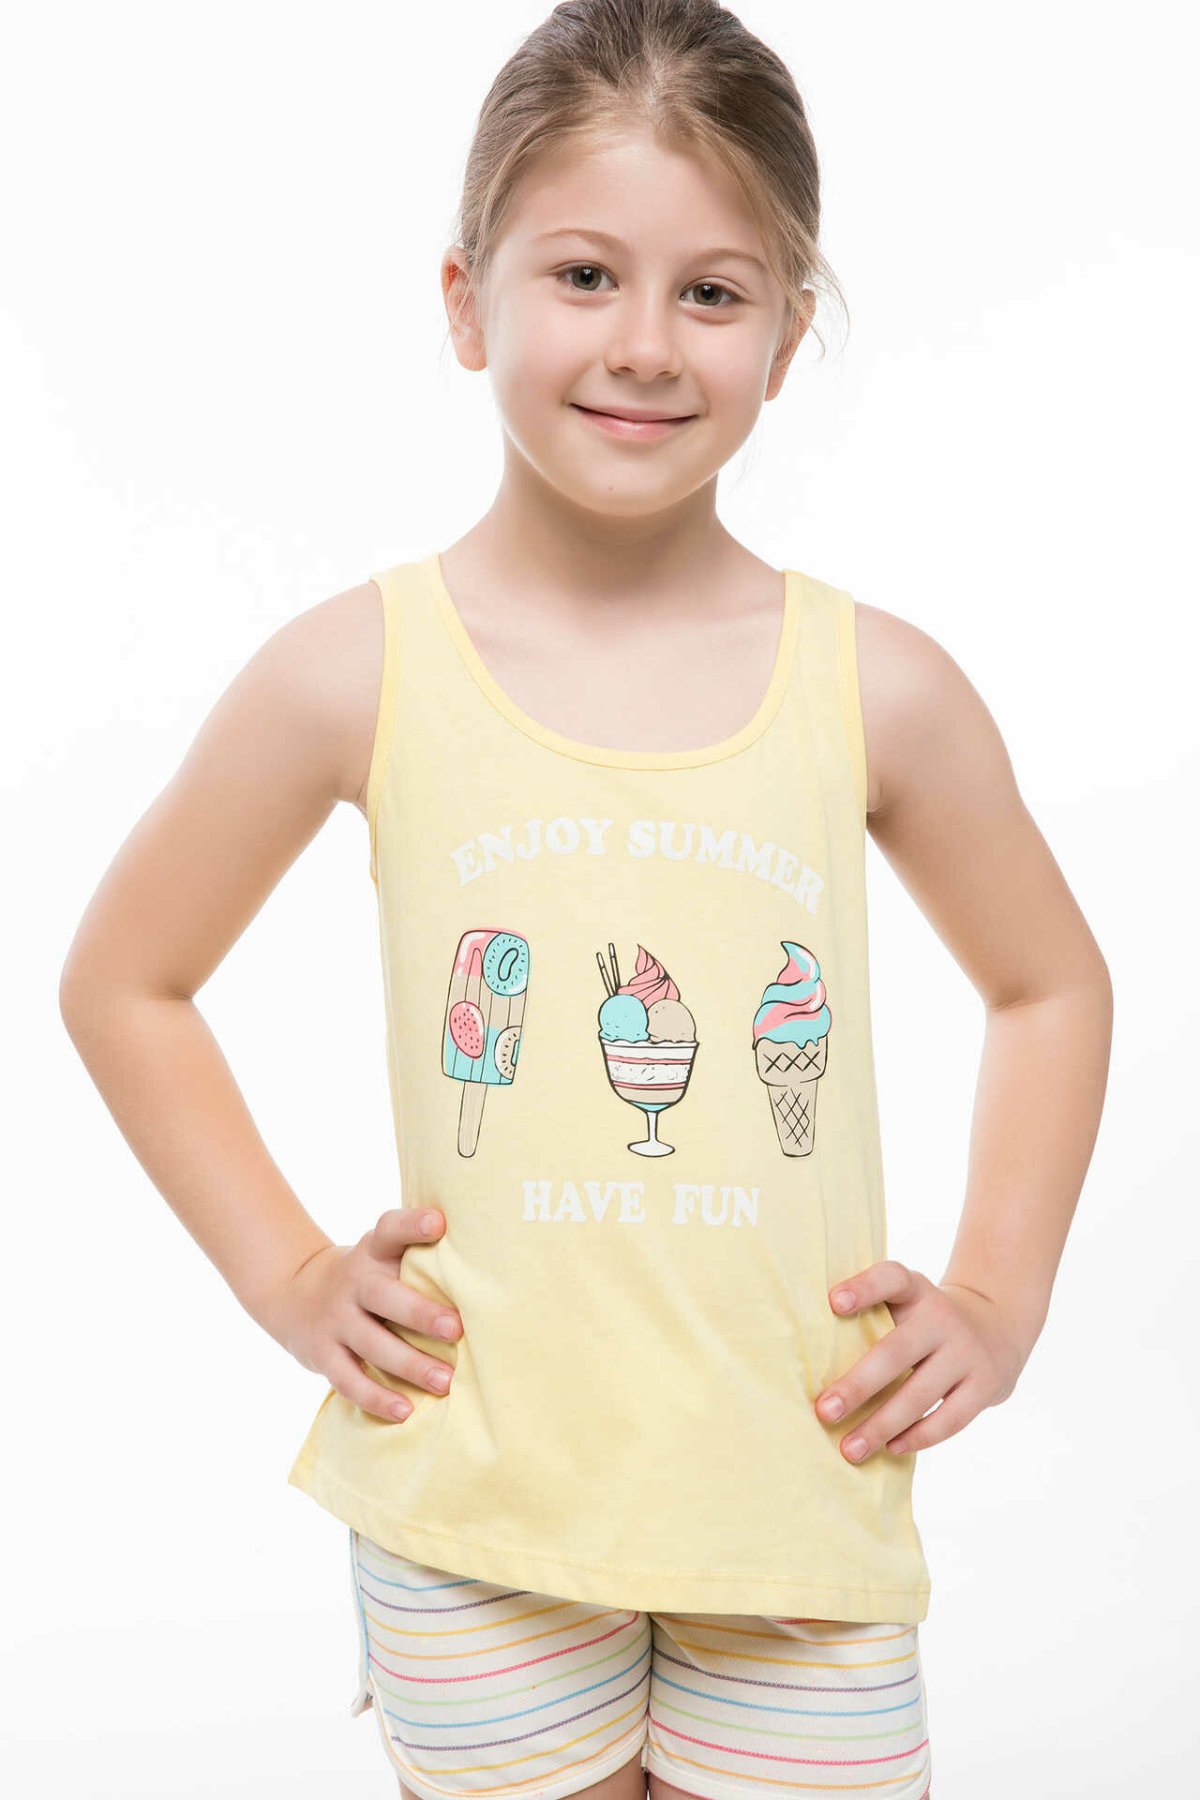 DeFacto Fashion Girl Vest Casual Kids O-neck Cartoon Pattern T-shirt Summer Loose Girls Tee Yellow  - J6626A618HS